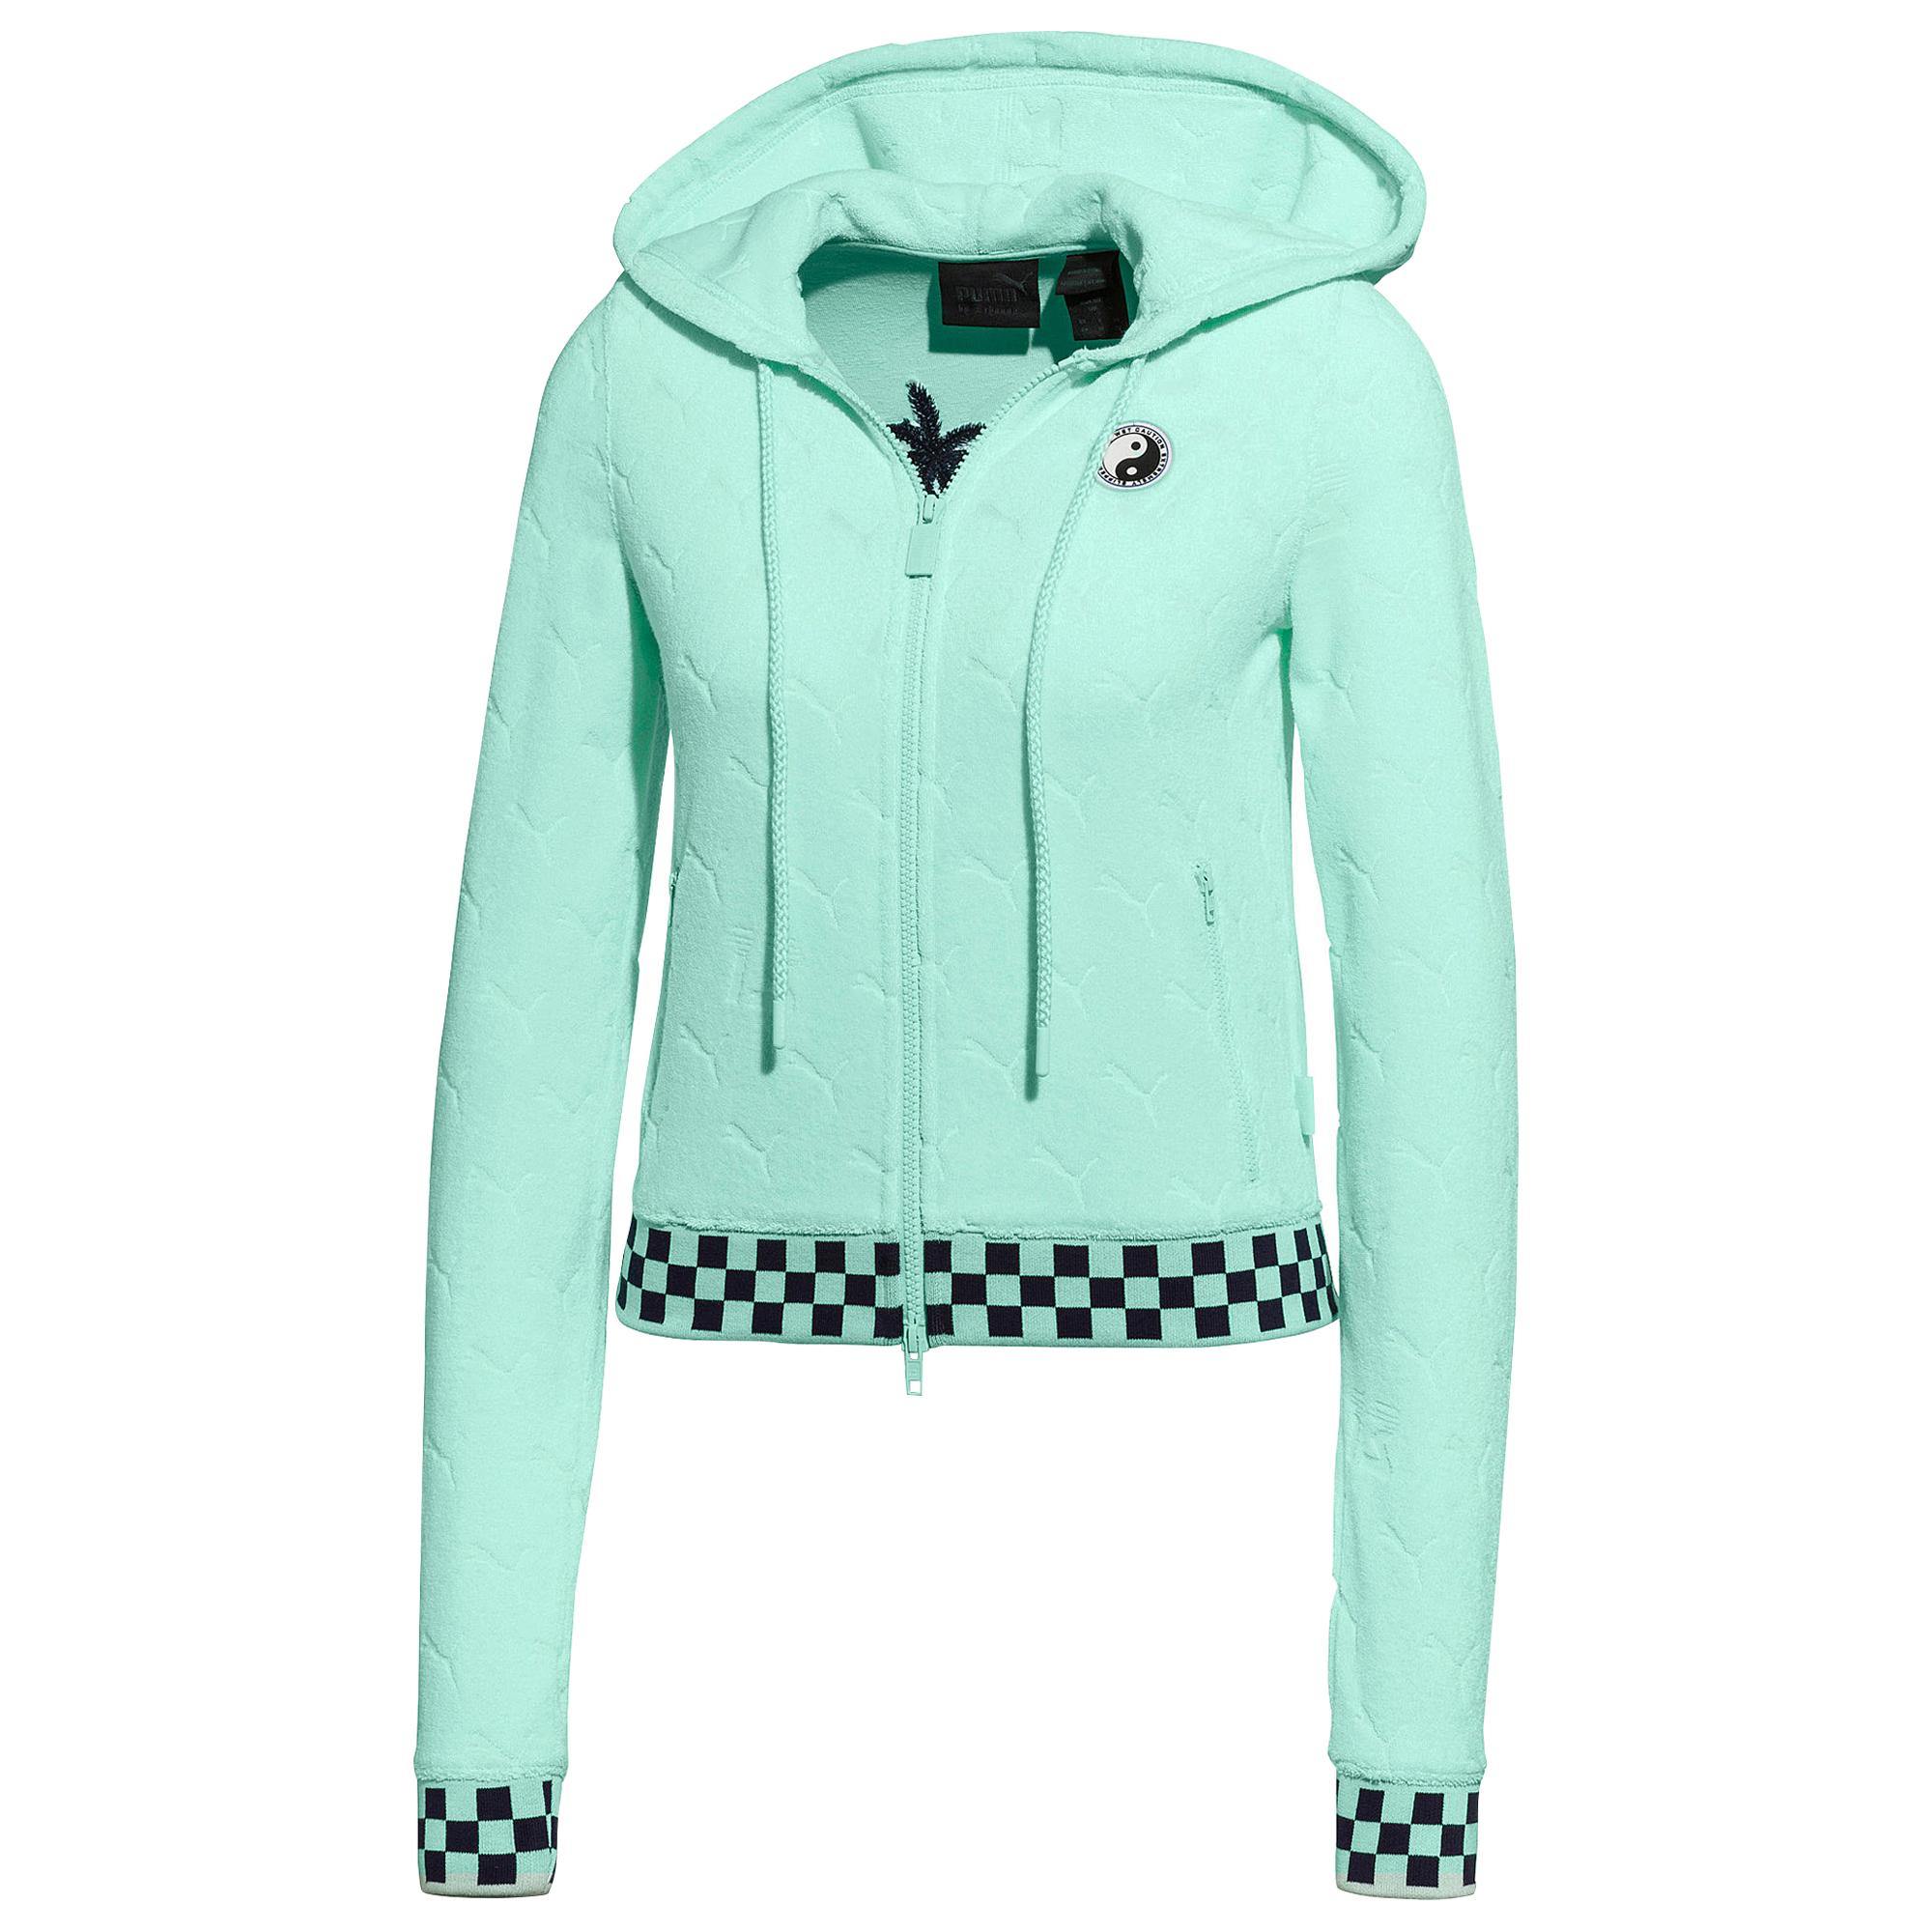 4d32c23ae9ba Lyst - PUMA Fenty Terry Zip Up Jacket in Green - Save 40%